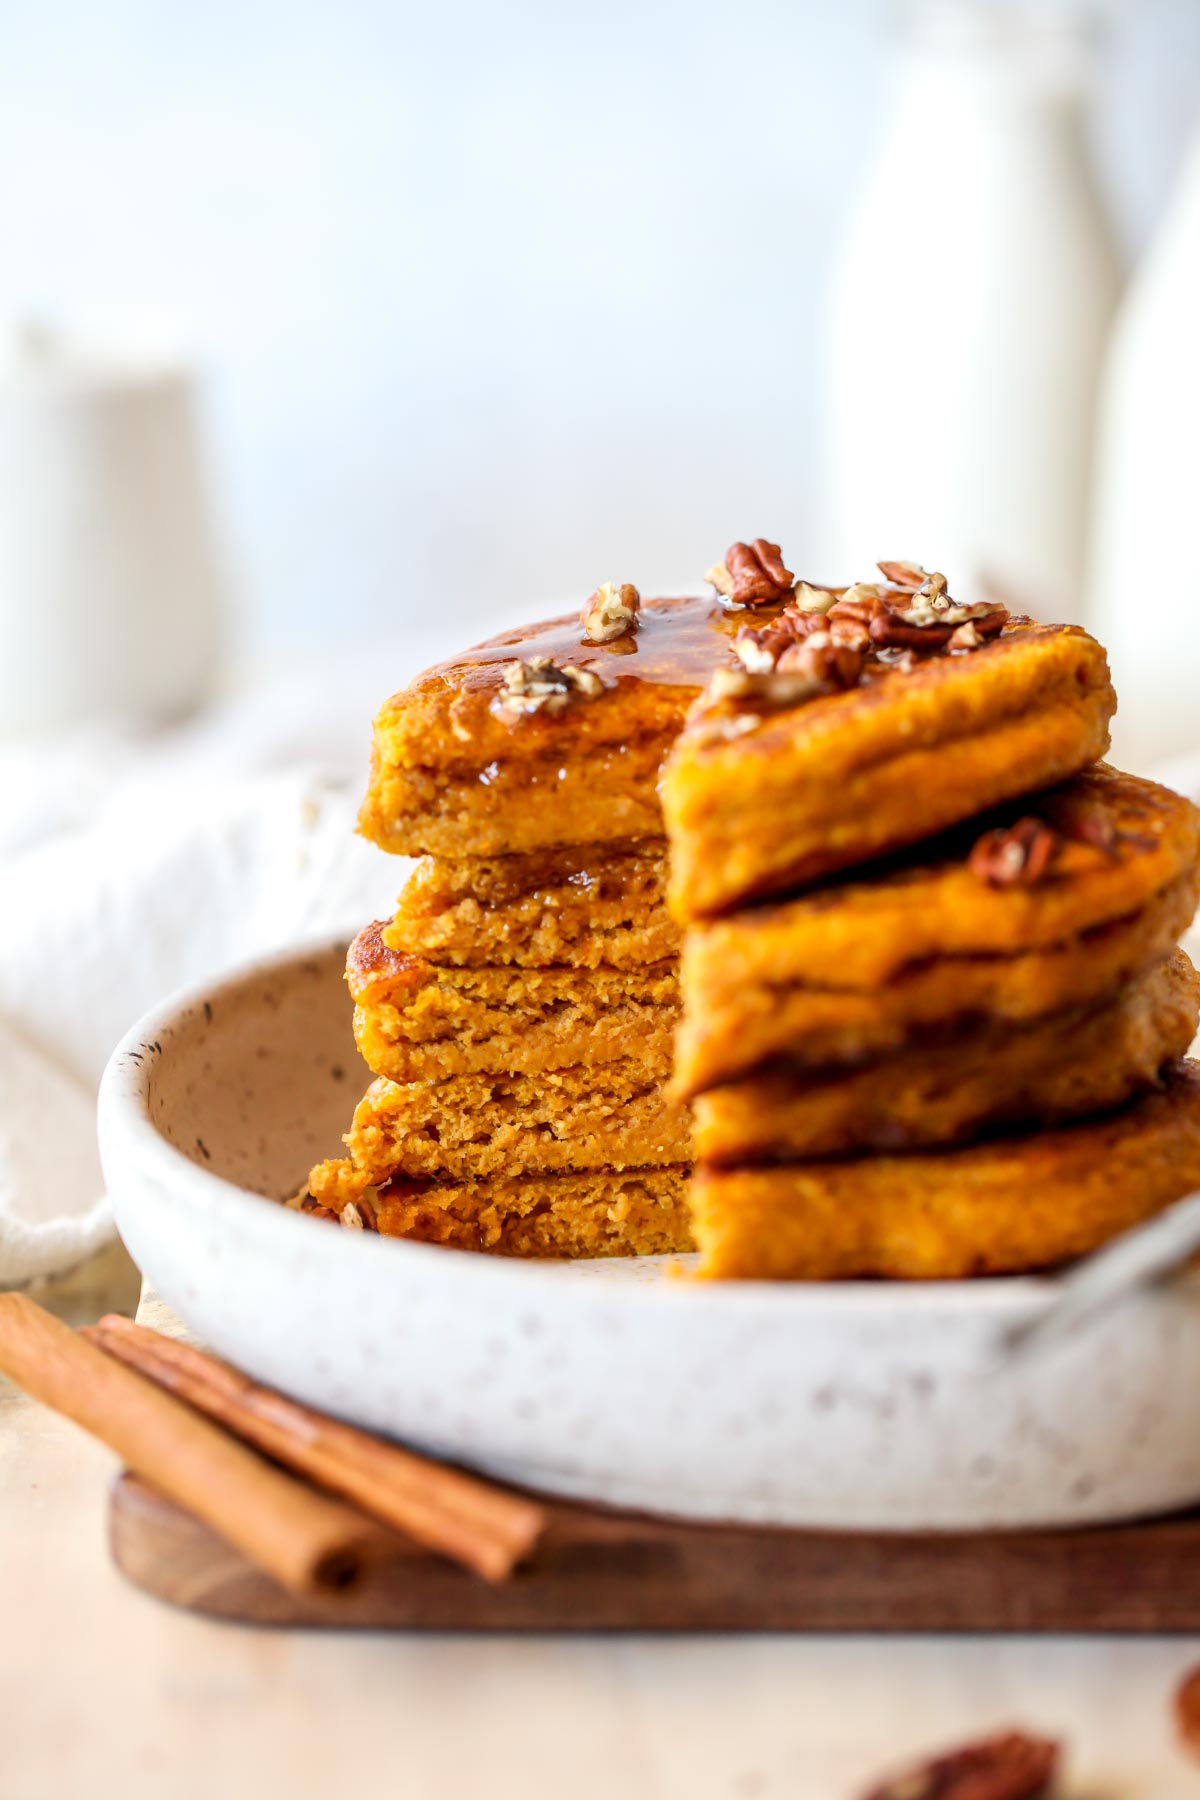 Stack of pumpkin pancakes being sliced into to reveal fluffy insides